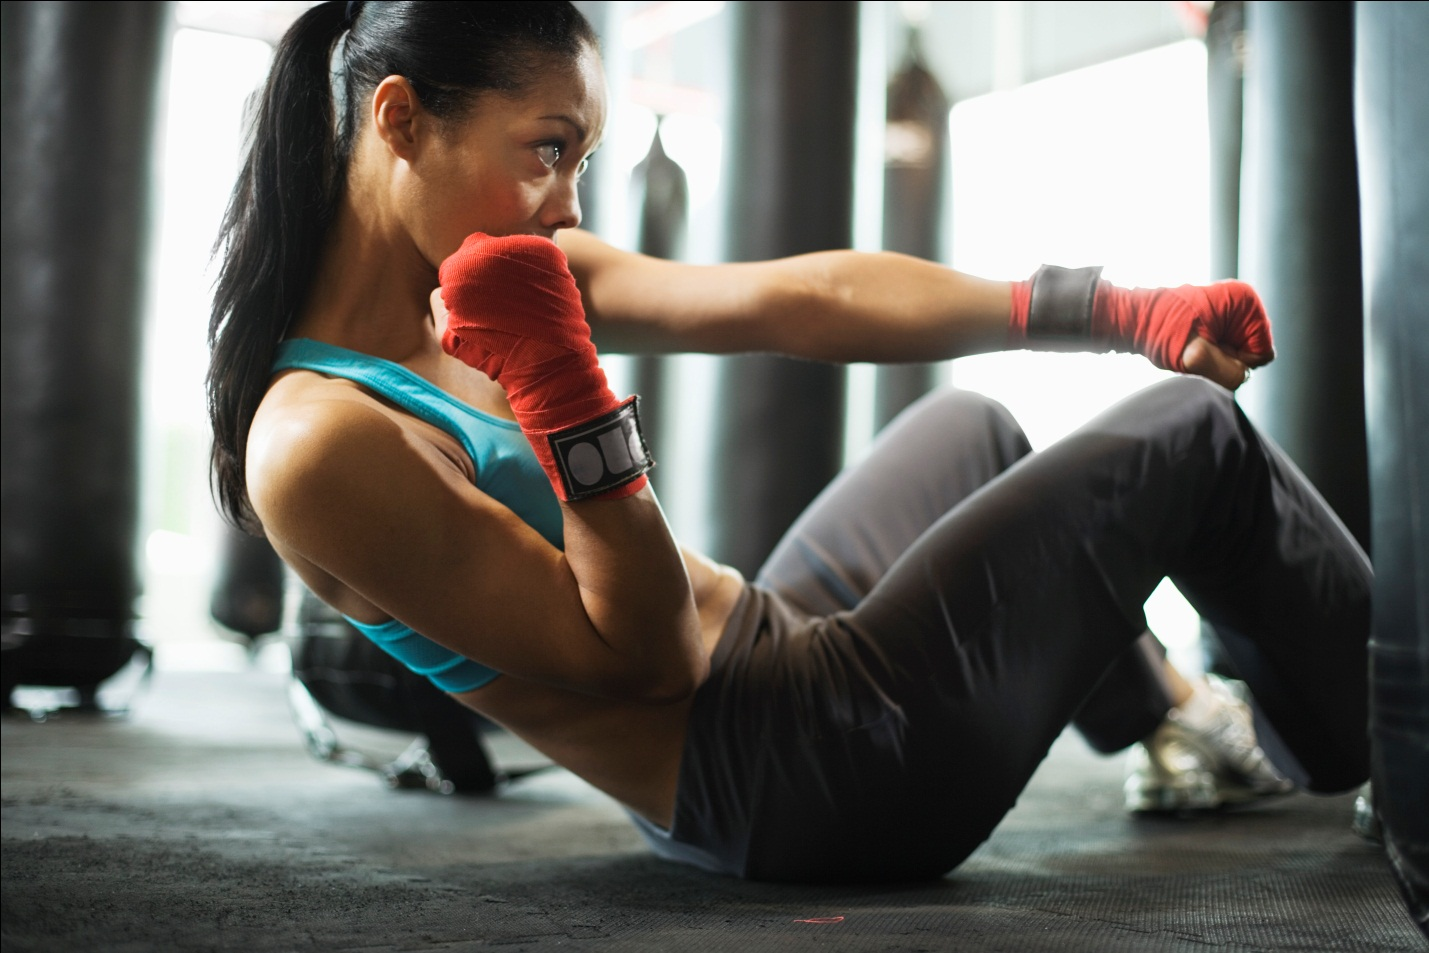 Know More About Good Health and Fitness Secrets